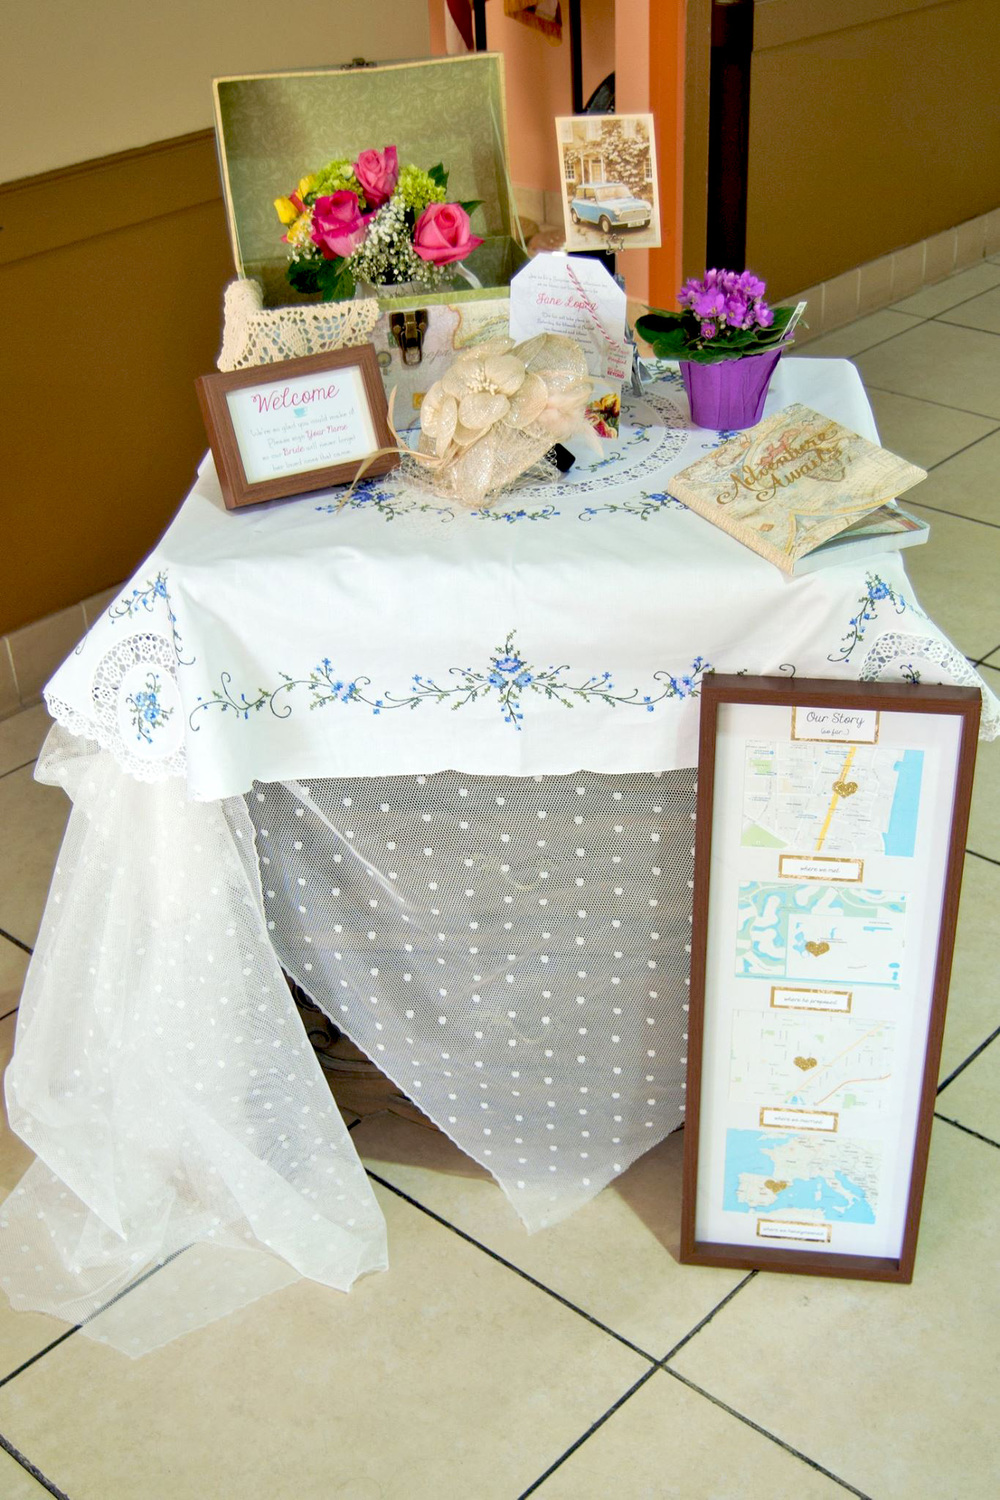 The Entrance Table not only had small, vintage touches, but it had personal touches including the celebrated couple's story and the Bridal Tea Invitation (which was a surprise to the Bride).